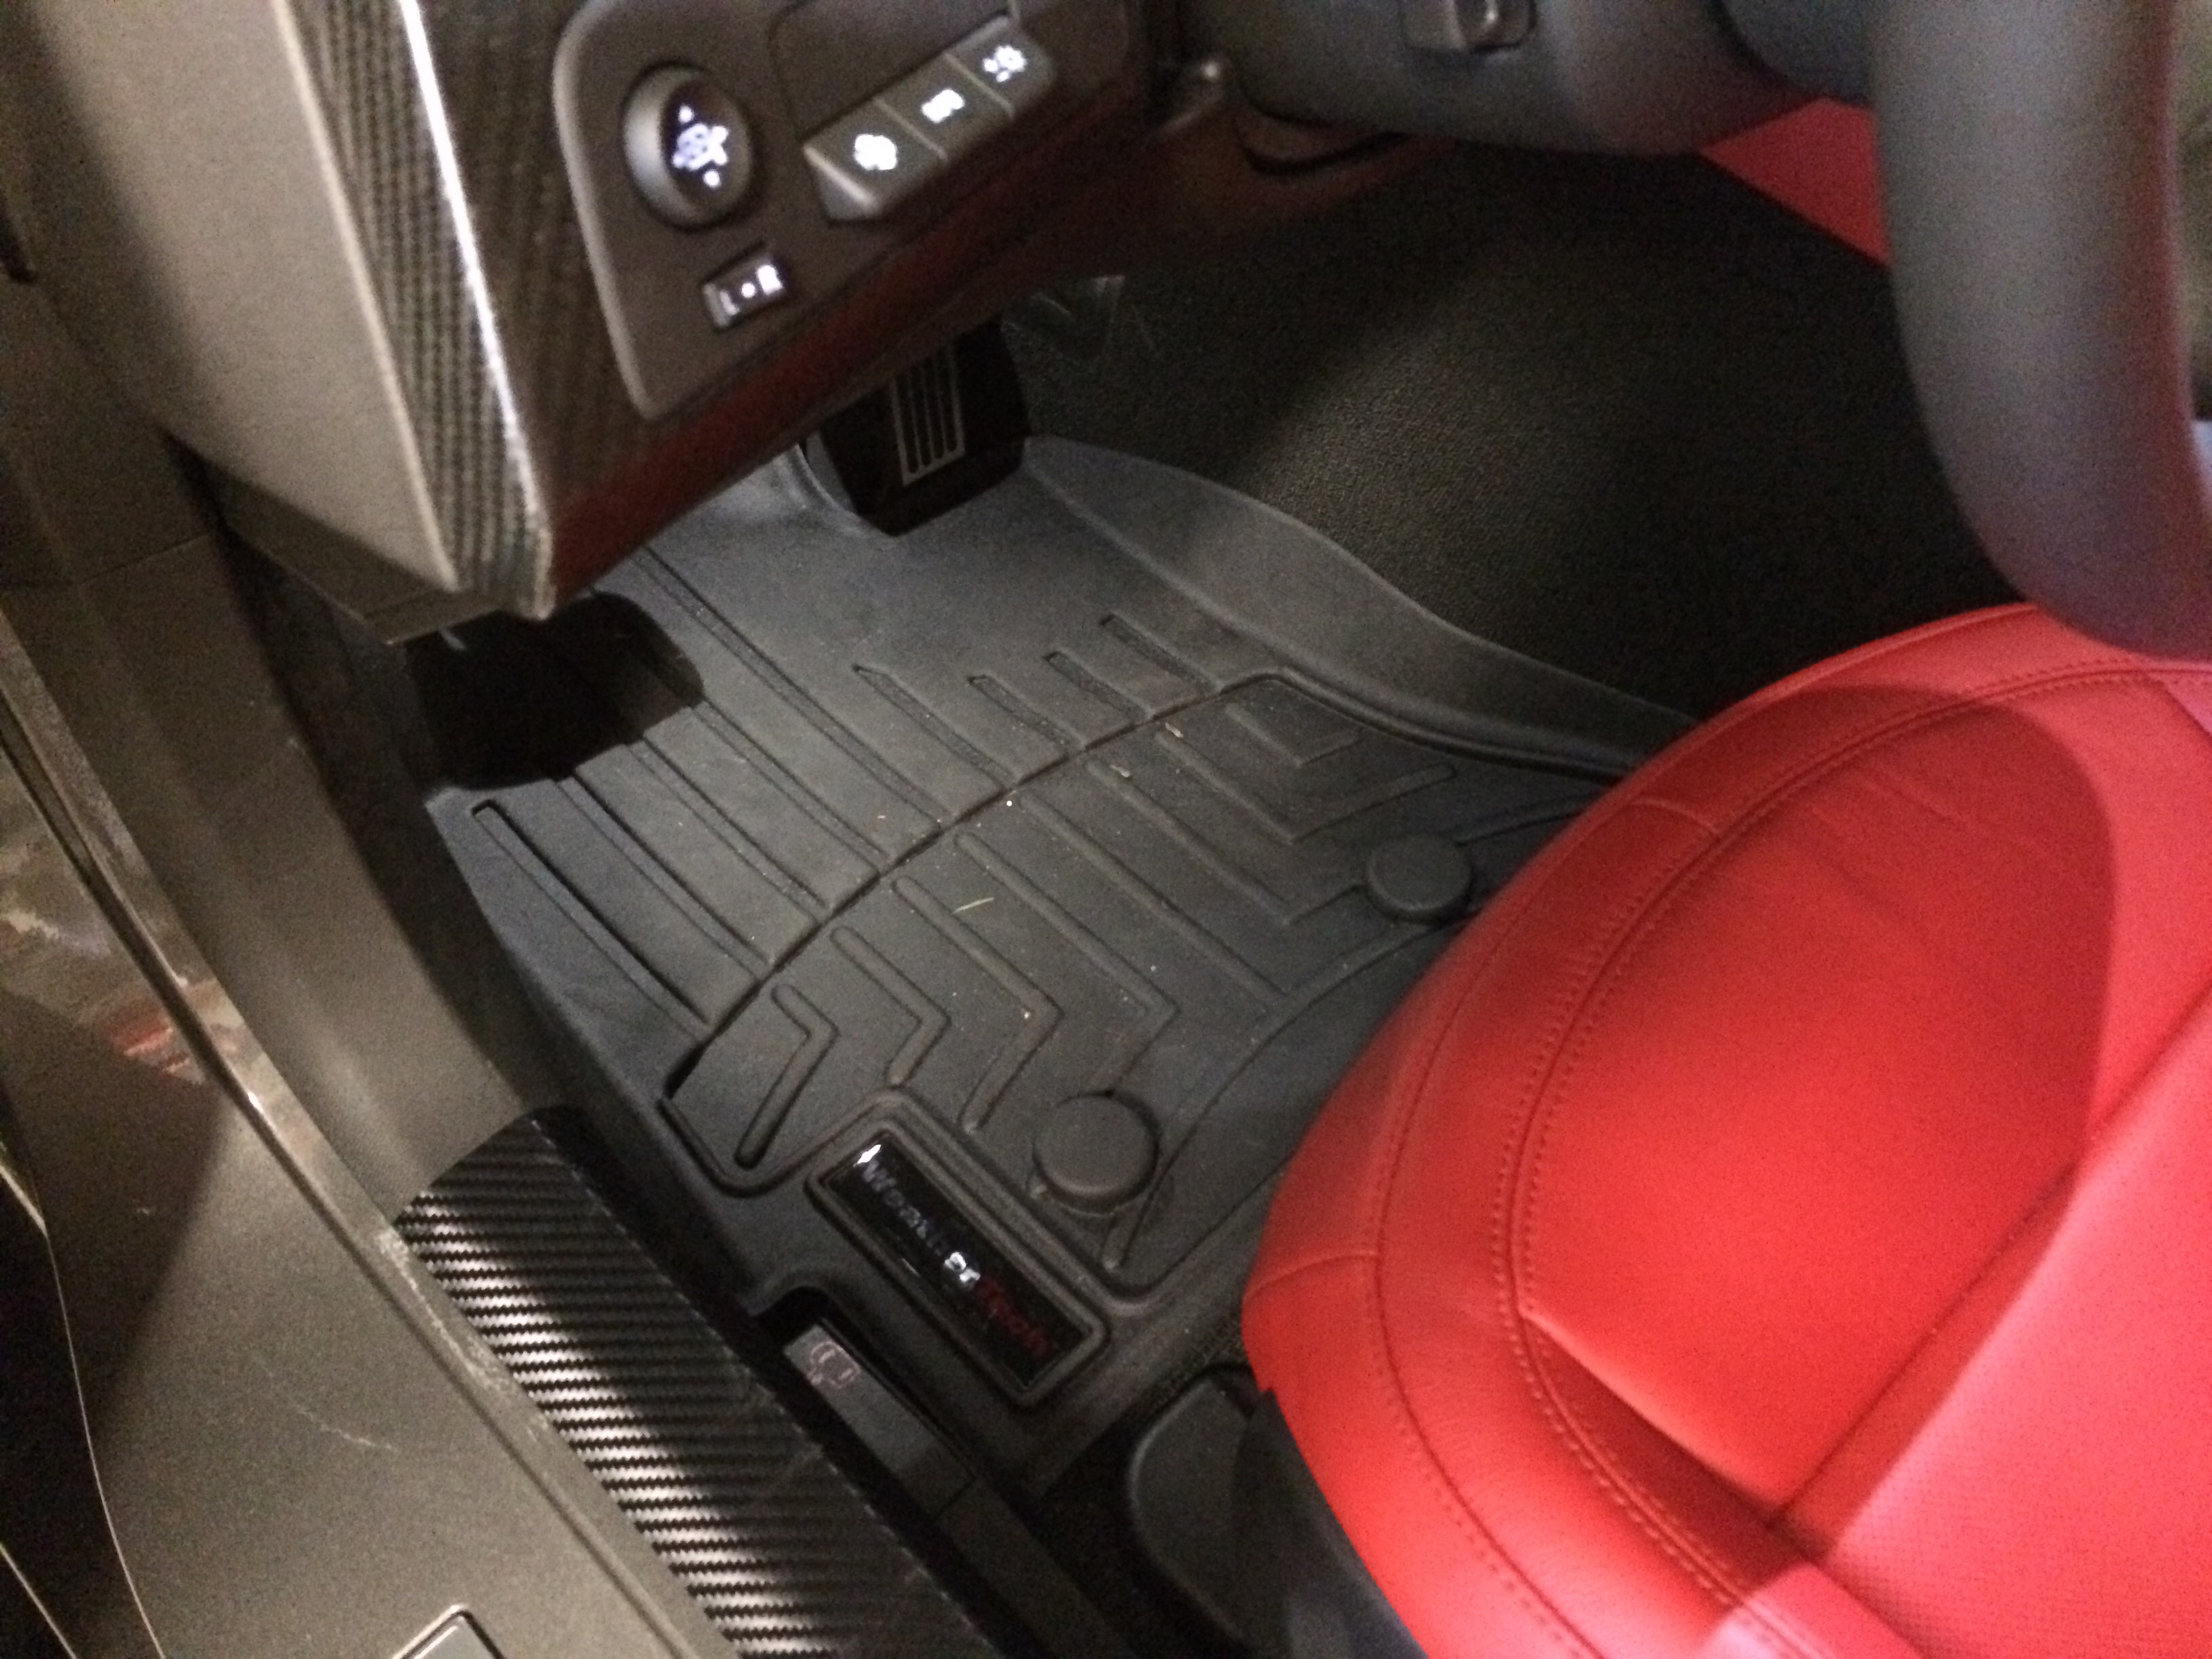 Weathertech floor mats rochester ny - Name Image Jpg Views 630 Size 1 25 Mb